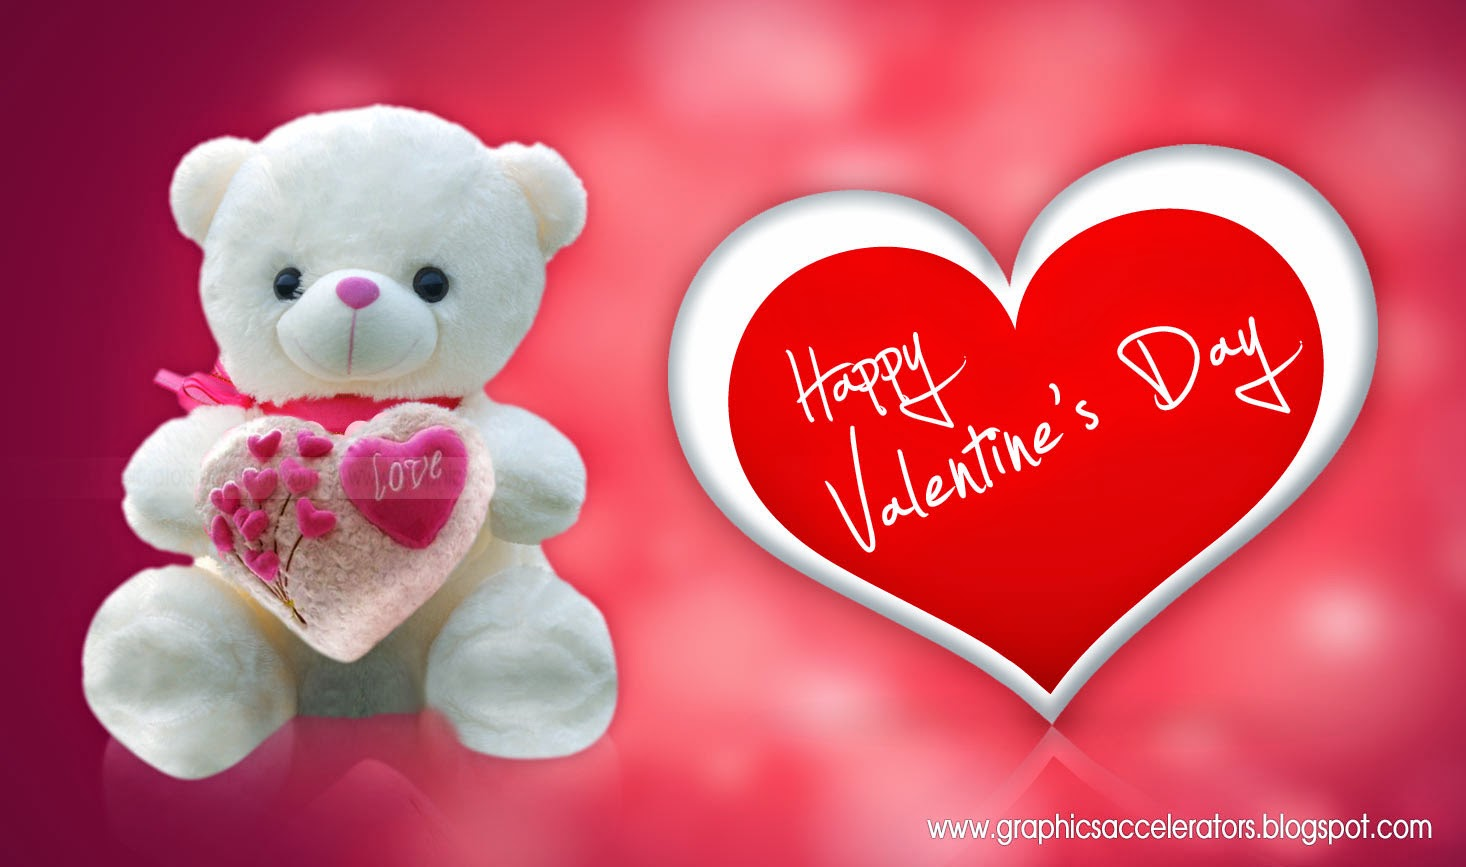 Happy valentines day 2016 greeting cards happy valentines day 2015 greeting cards for gf m4hsunfo